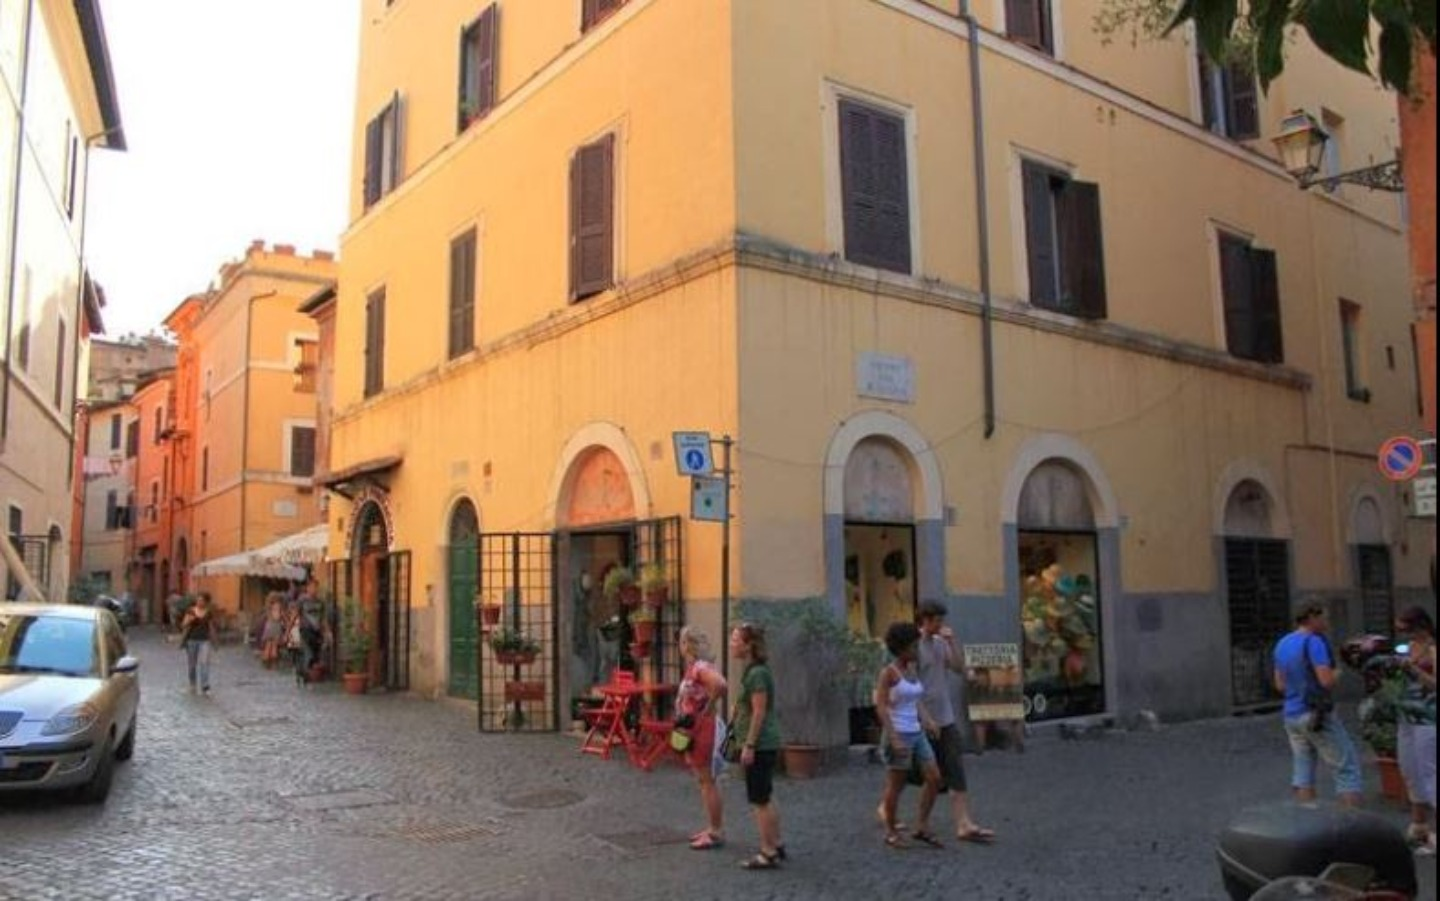 A group of people walking in front of a building at Ventisei Scalini a Trastevere.